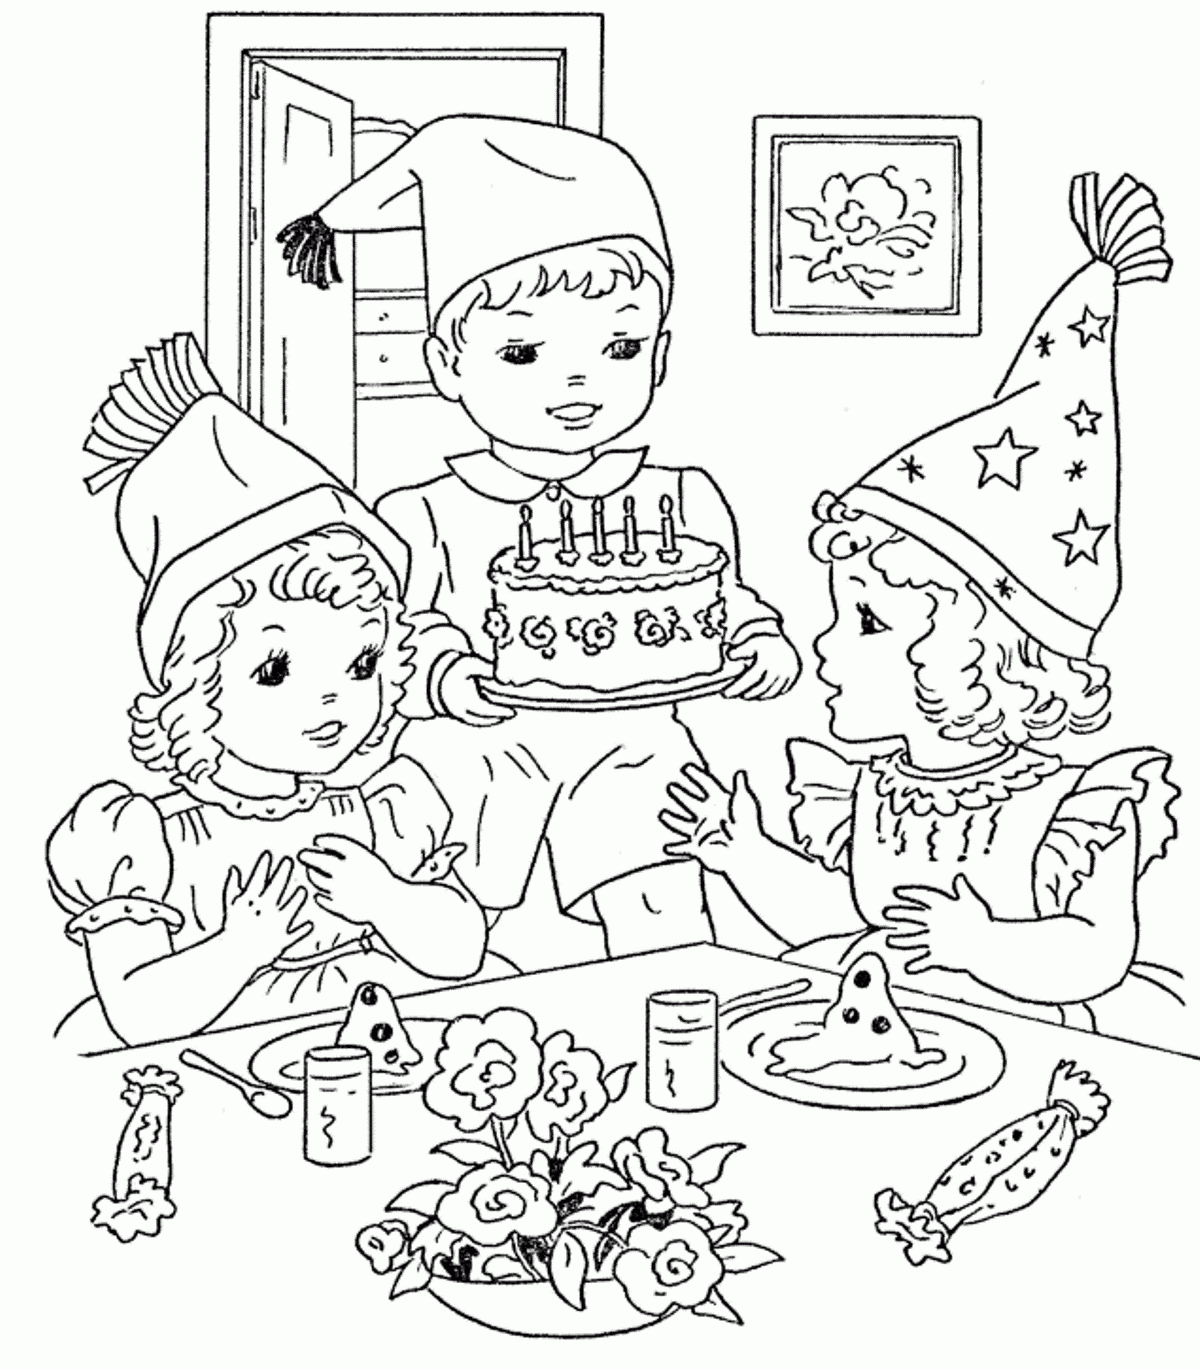 picture of birthday party scene ; birthday-party-scene-image-birthday-party-scene-for-drawing-coloring-pages-birthday-party-coloring-home